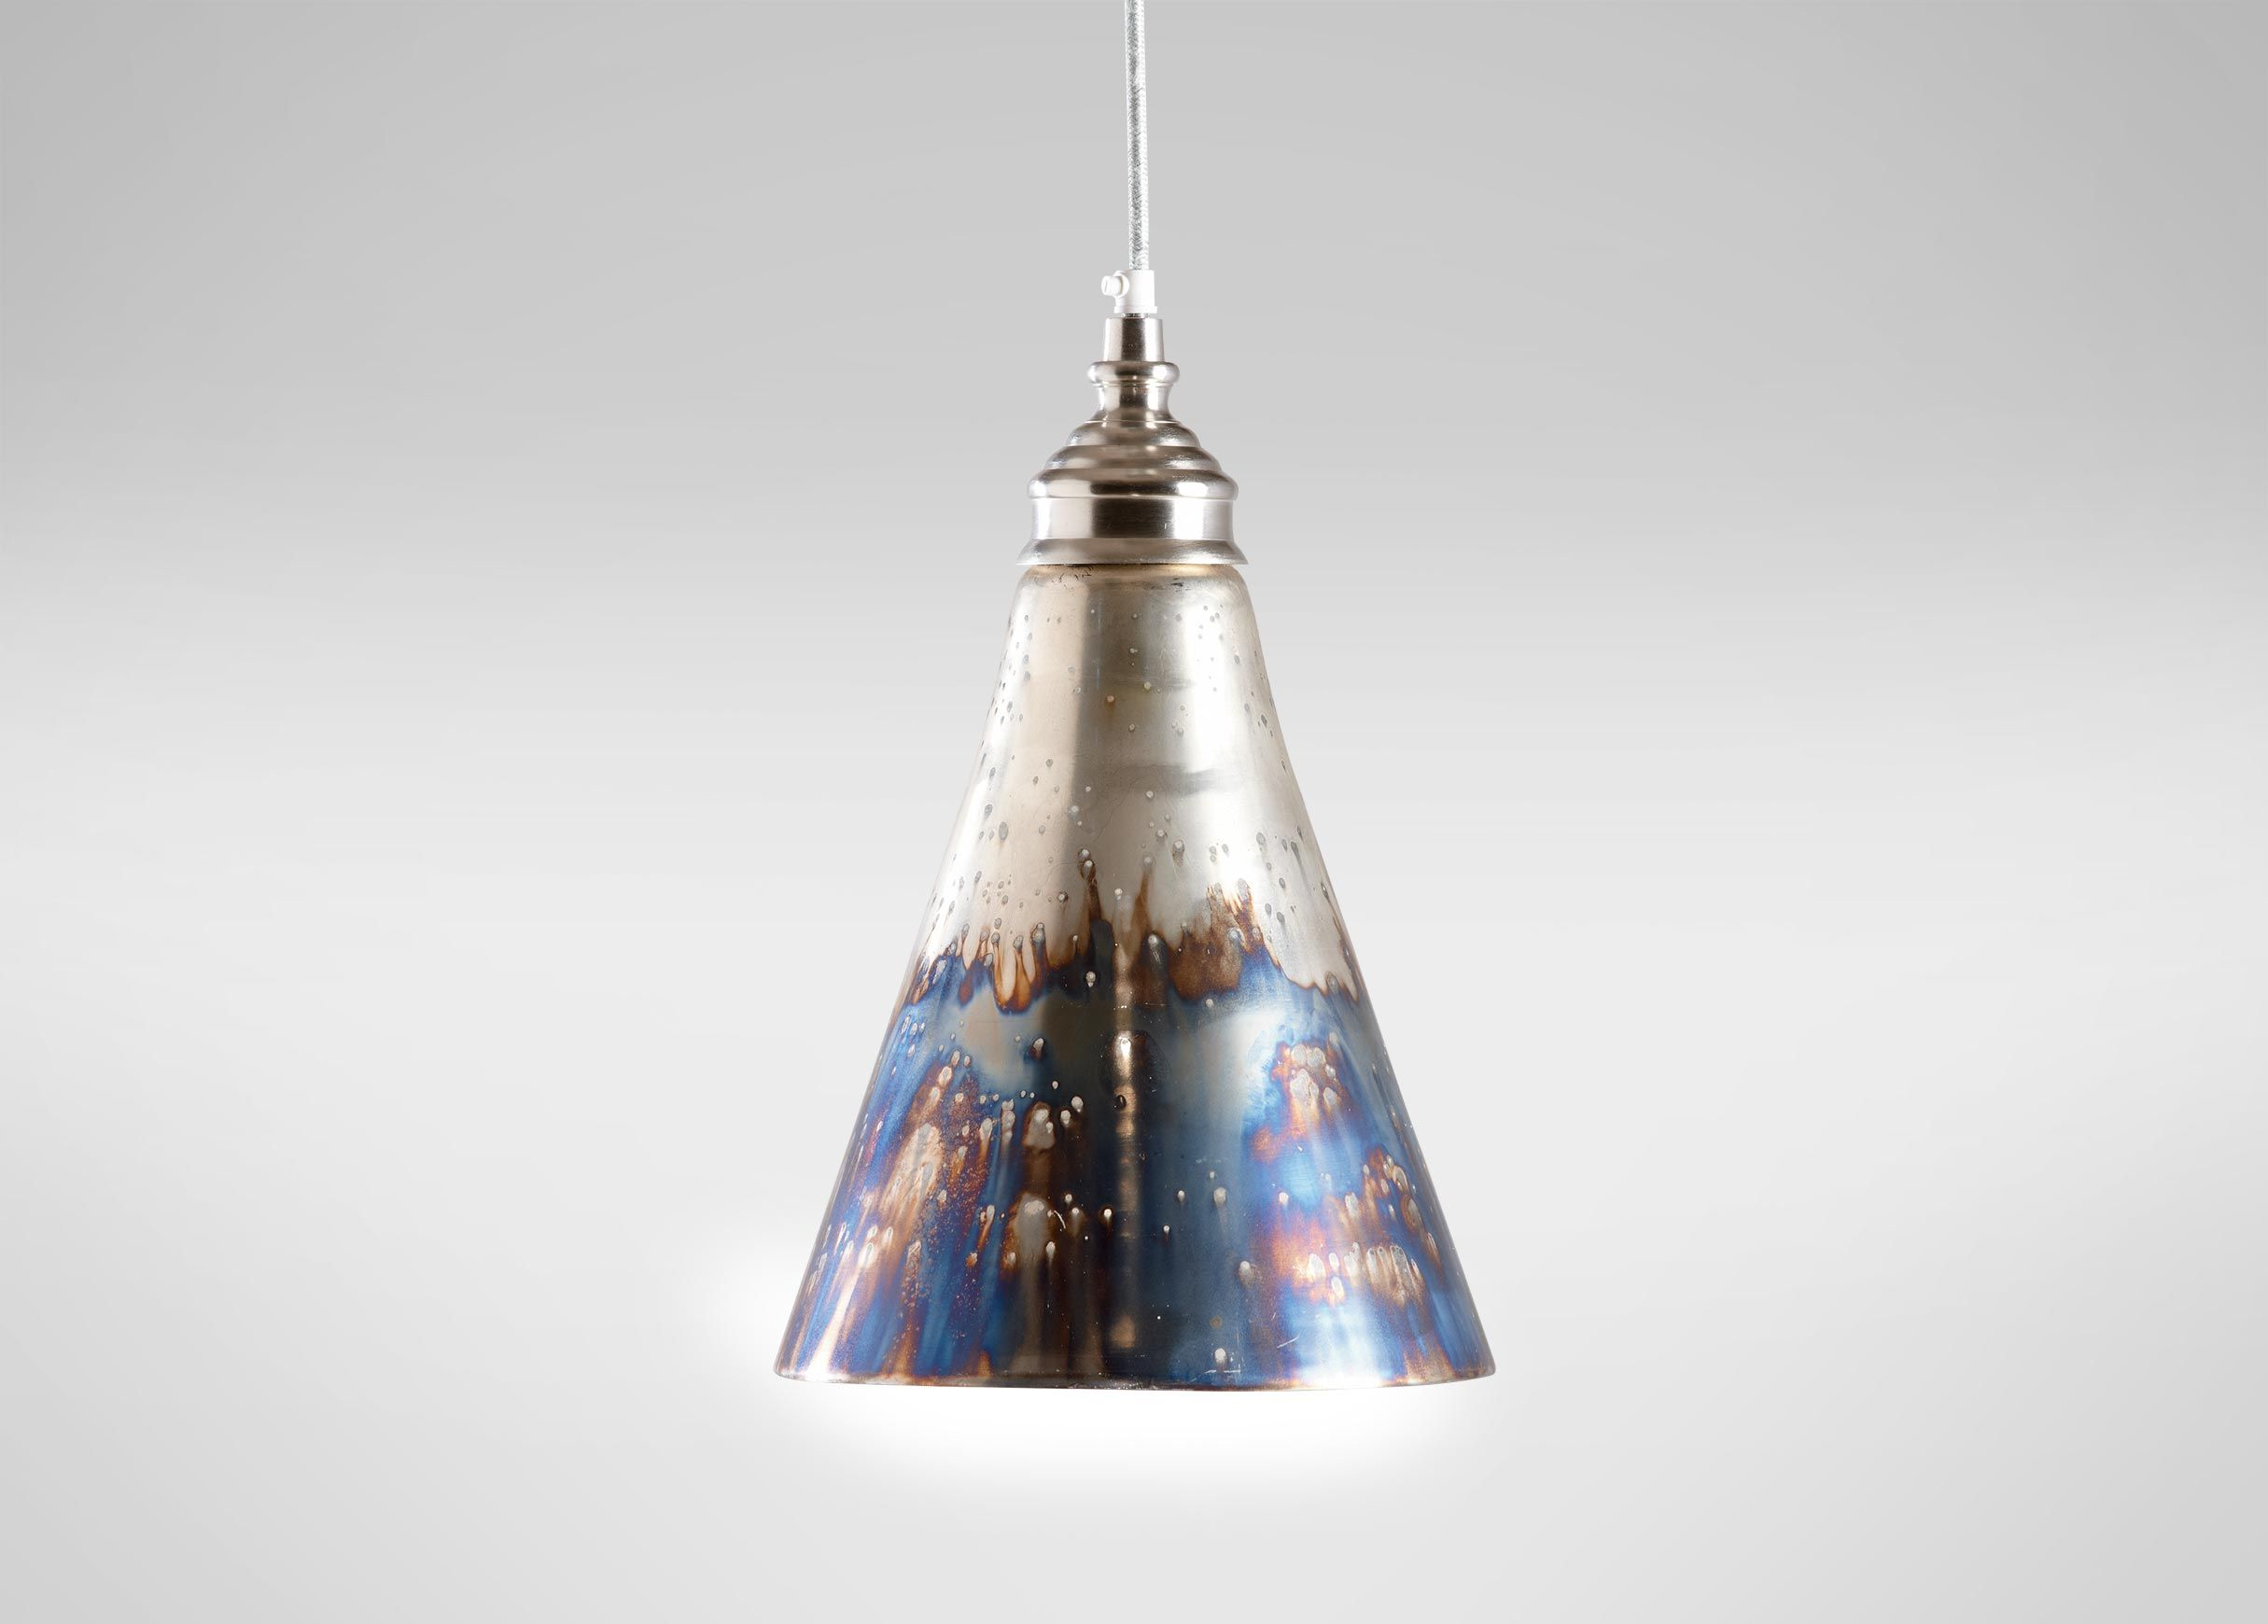 patterned heavy bubble glass light pendant